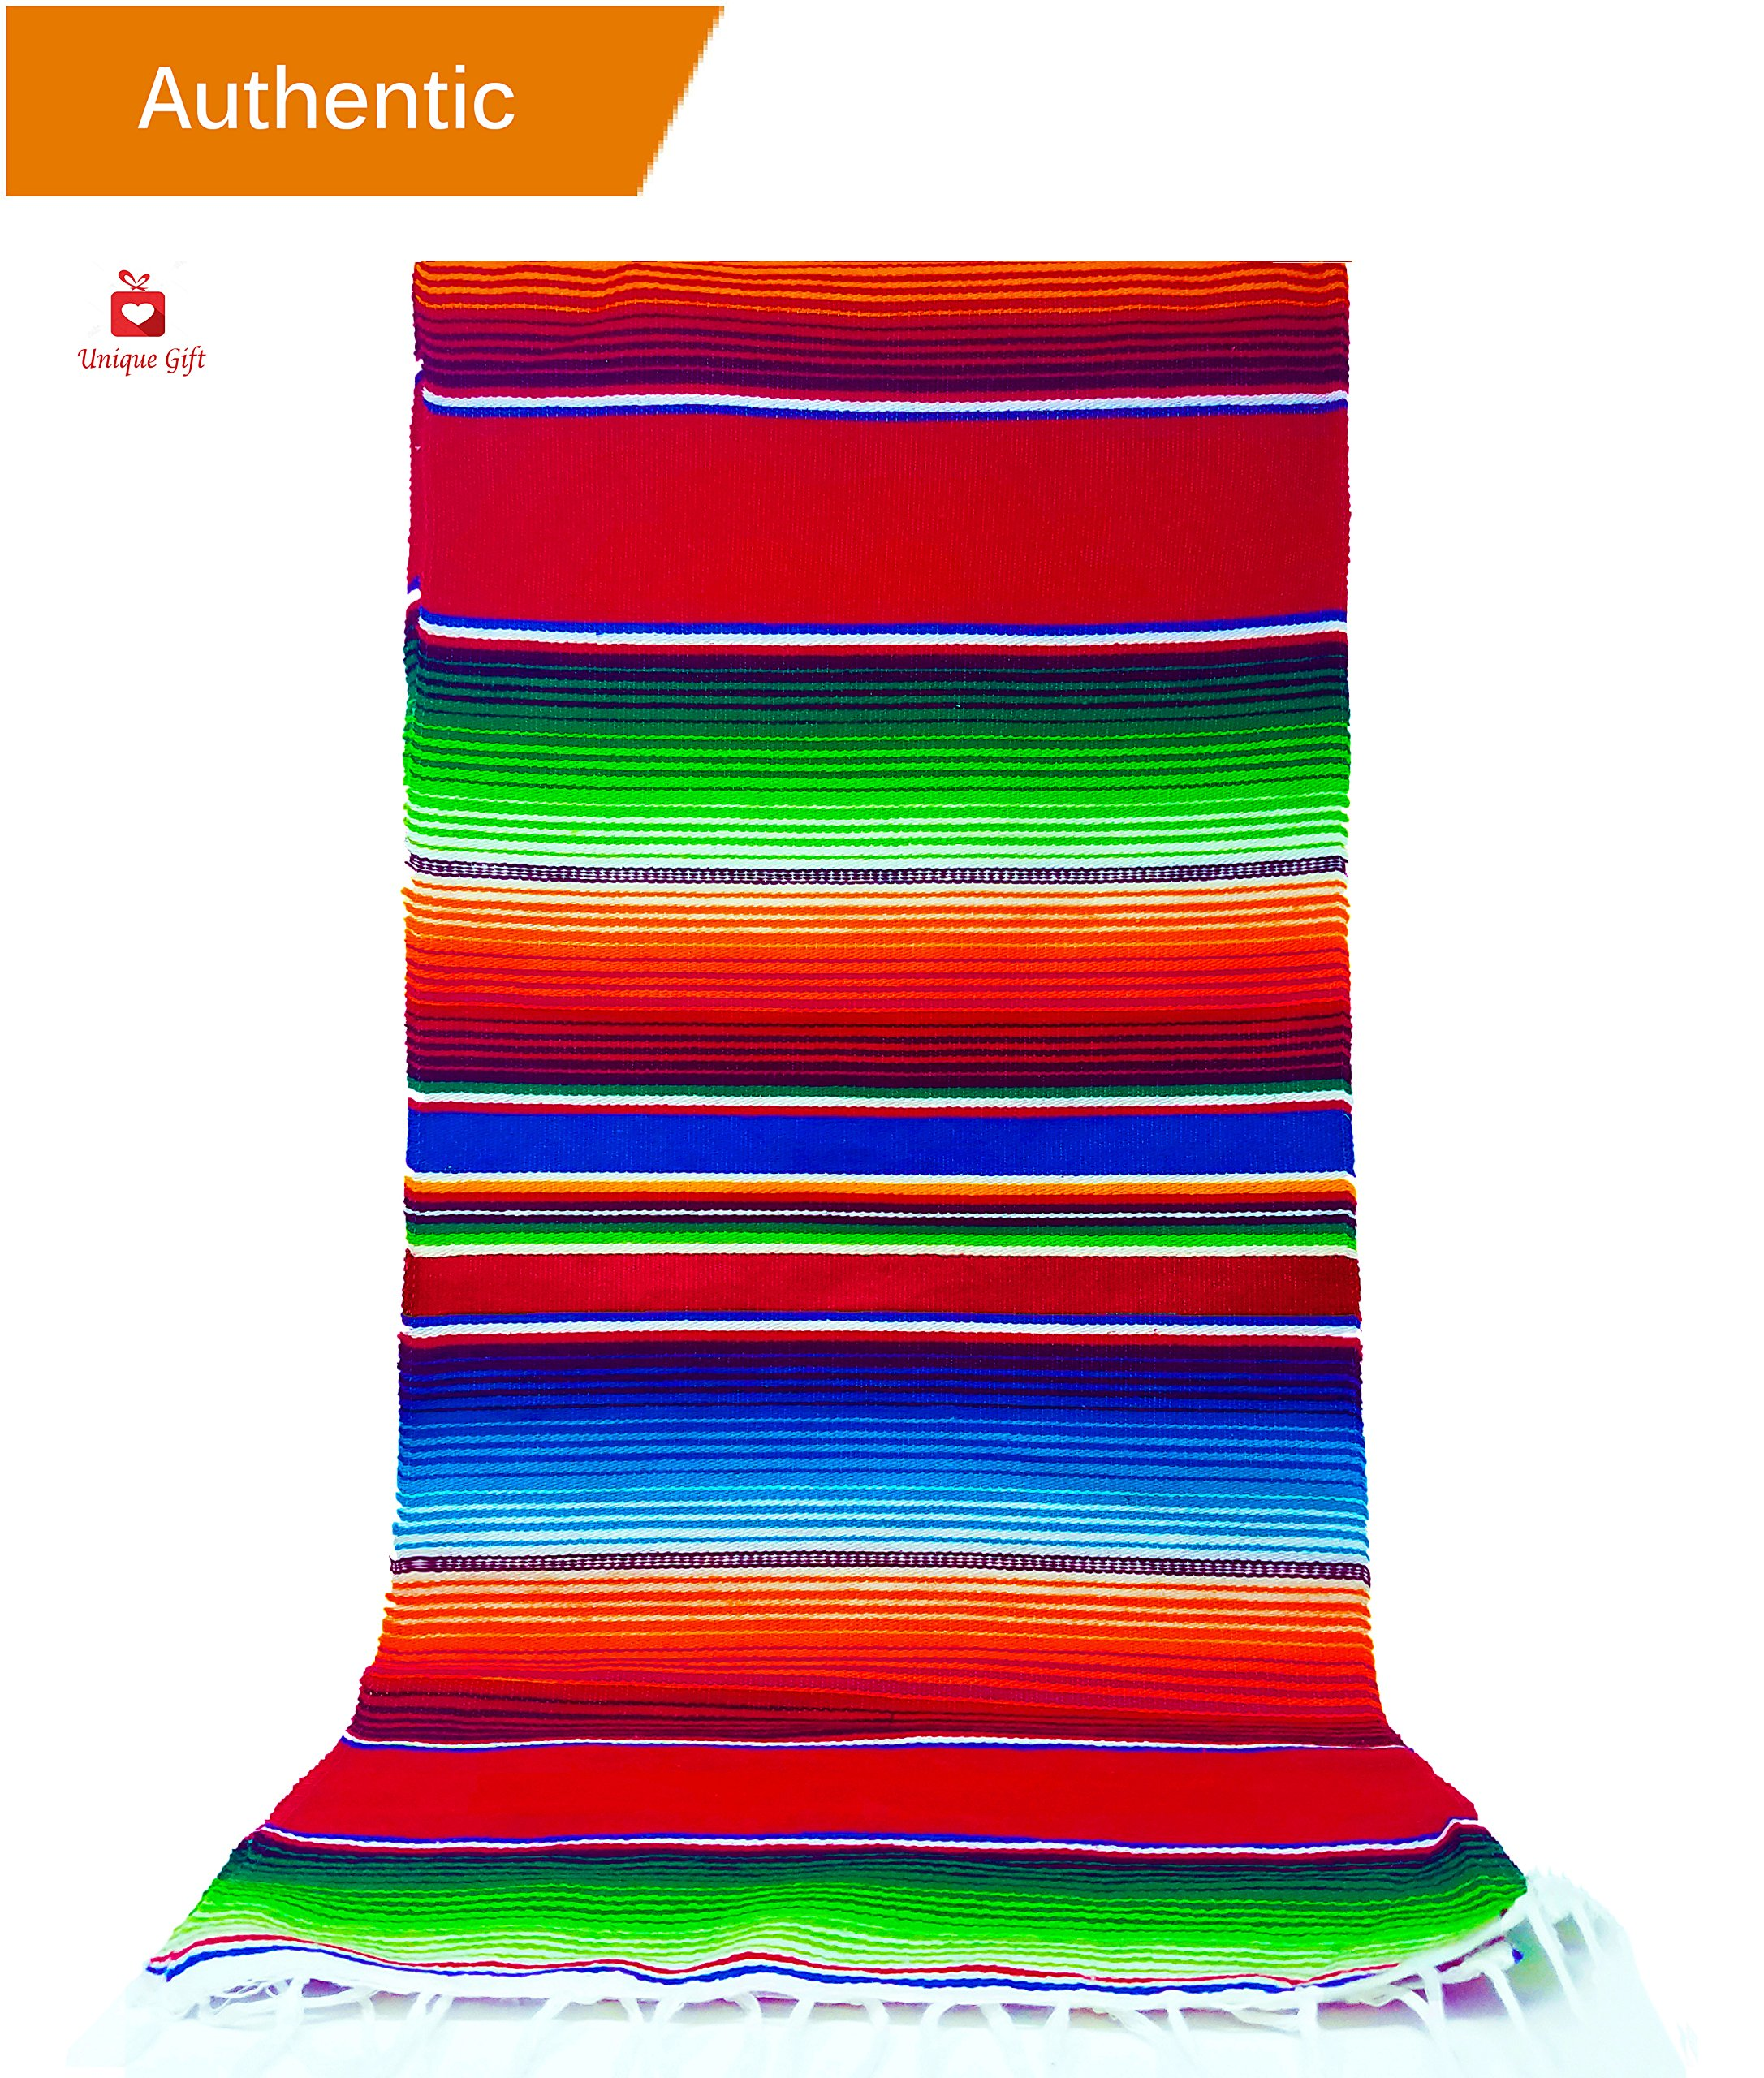 New | Alondra's Imports️ (84'' x 15'') Elegantly Handwoven, Genuine Serape Table Runner (Mexican Table Runner, Fiesta Table Runner, Mexican Blanket, Zarape, Serape) (Lustrous Ruby Red)